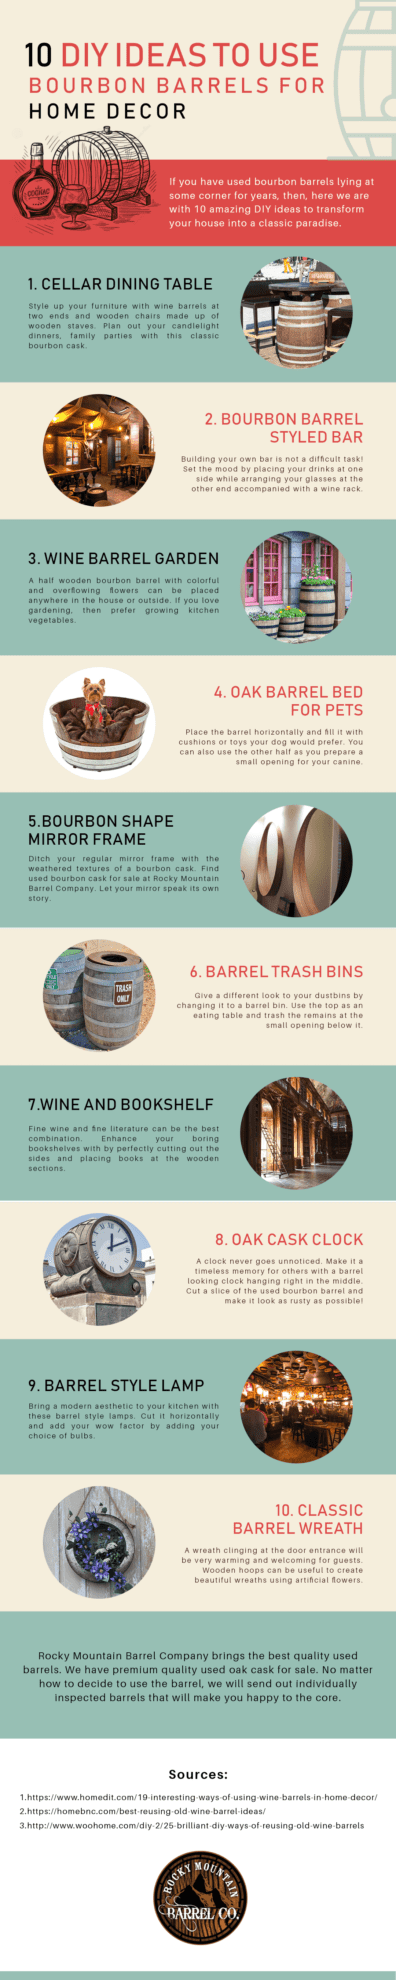 10 Diy Ideas To Use Barrels For Home Decor Infographic